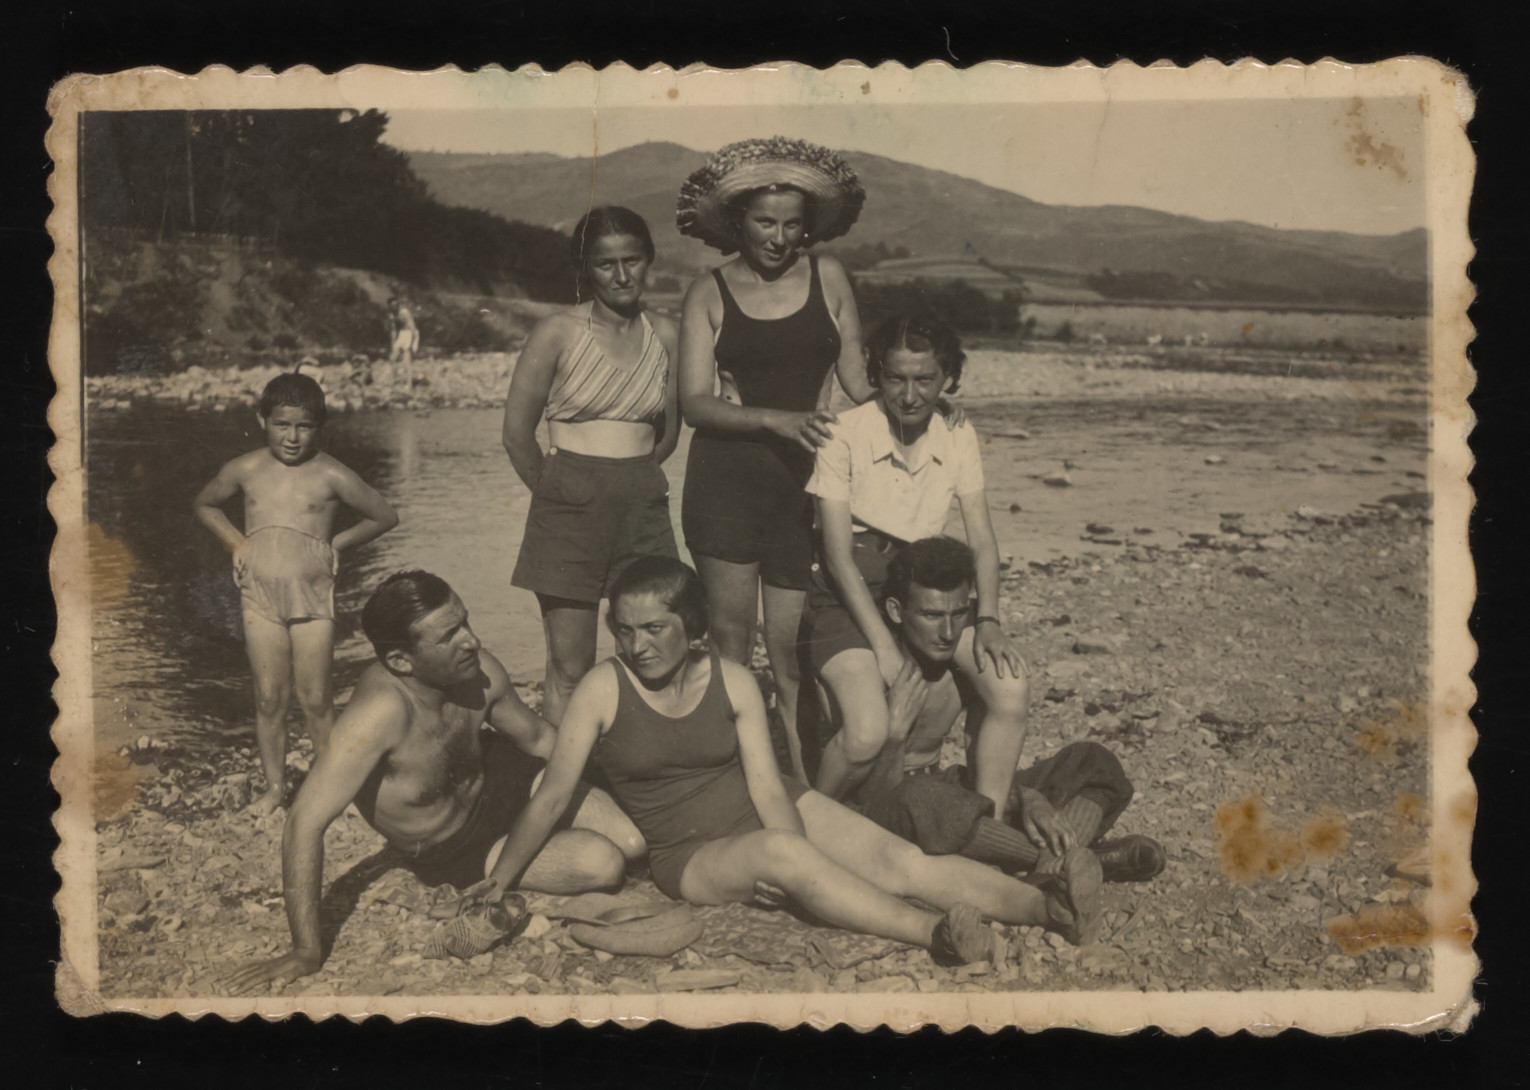 A group of friends from Drohobycz goes swimming on either a lake or a river.  Seated in front are Jacob Drimer and his sister-in-law Rywka Gruber.